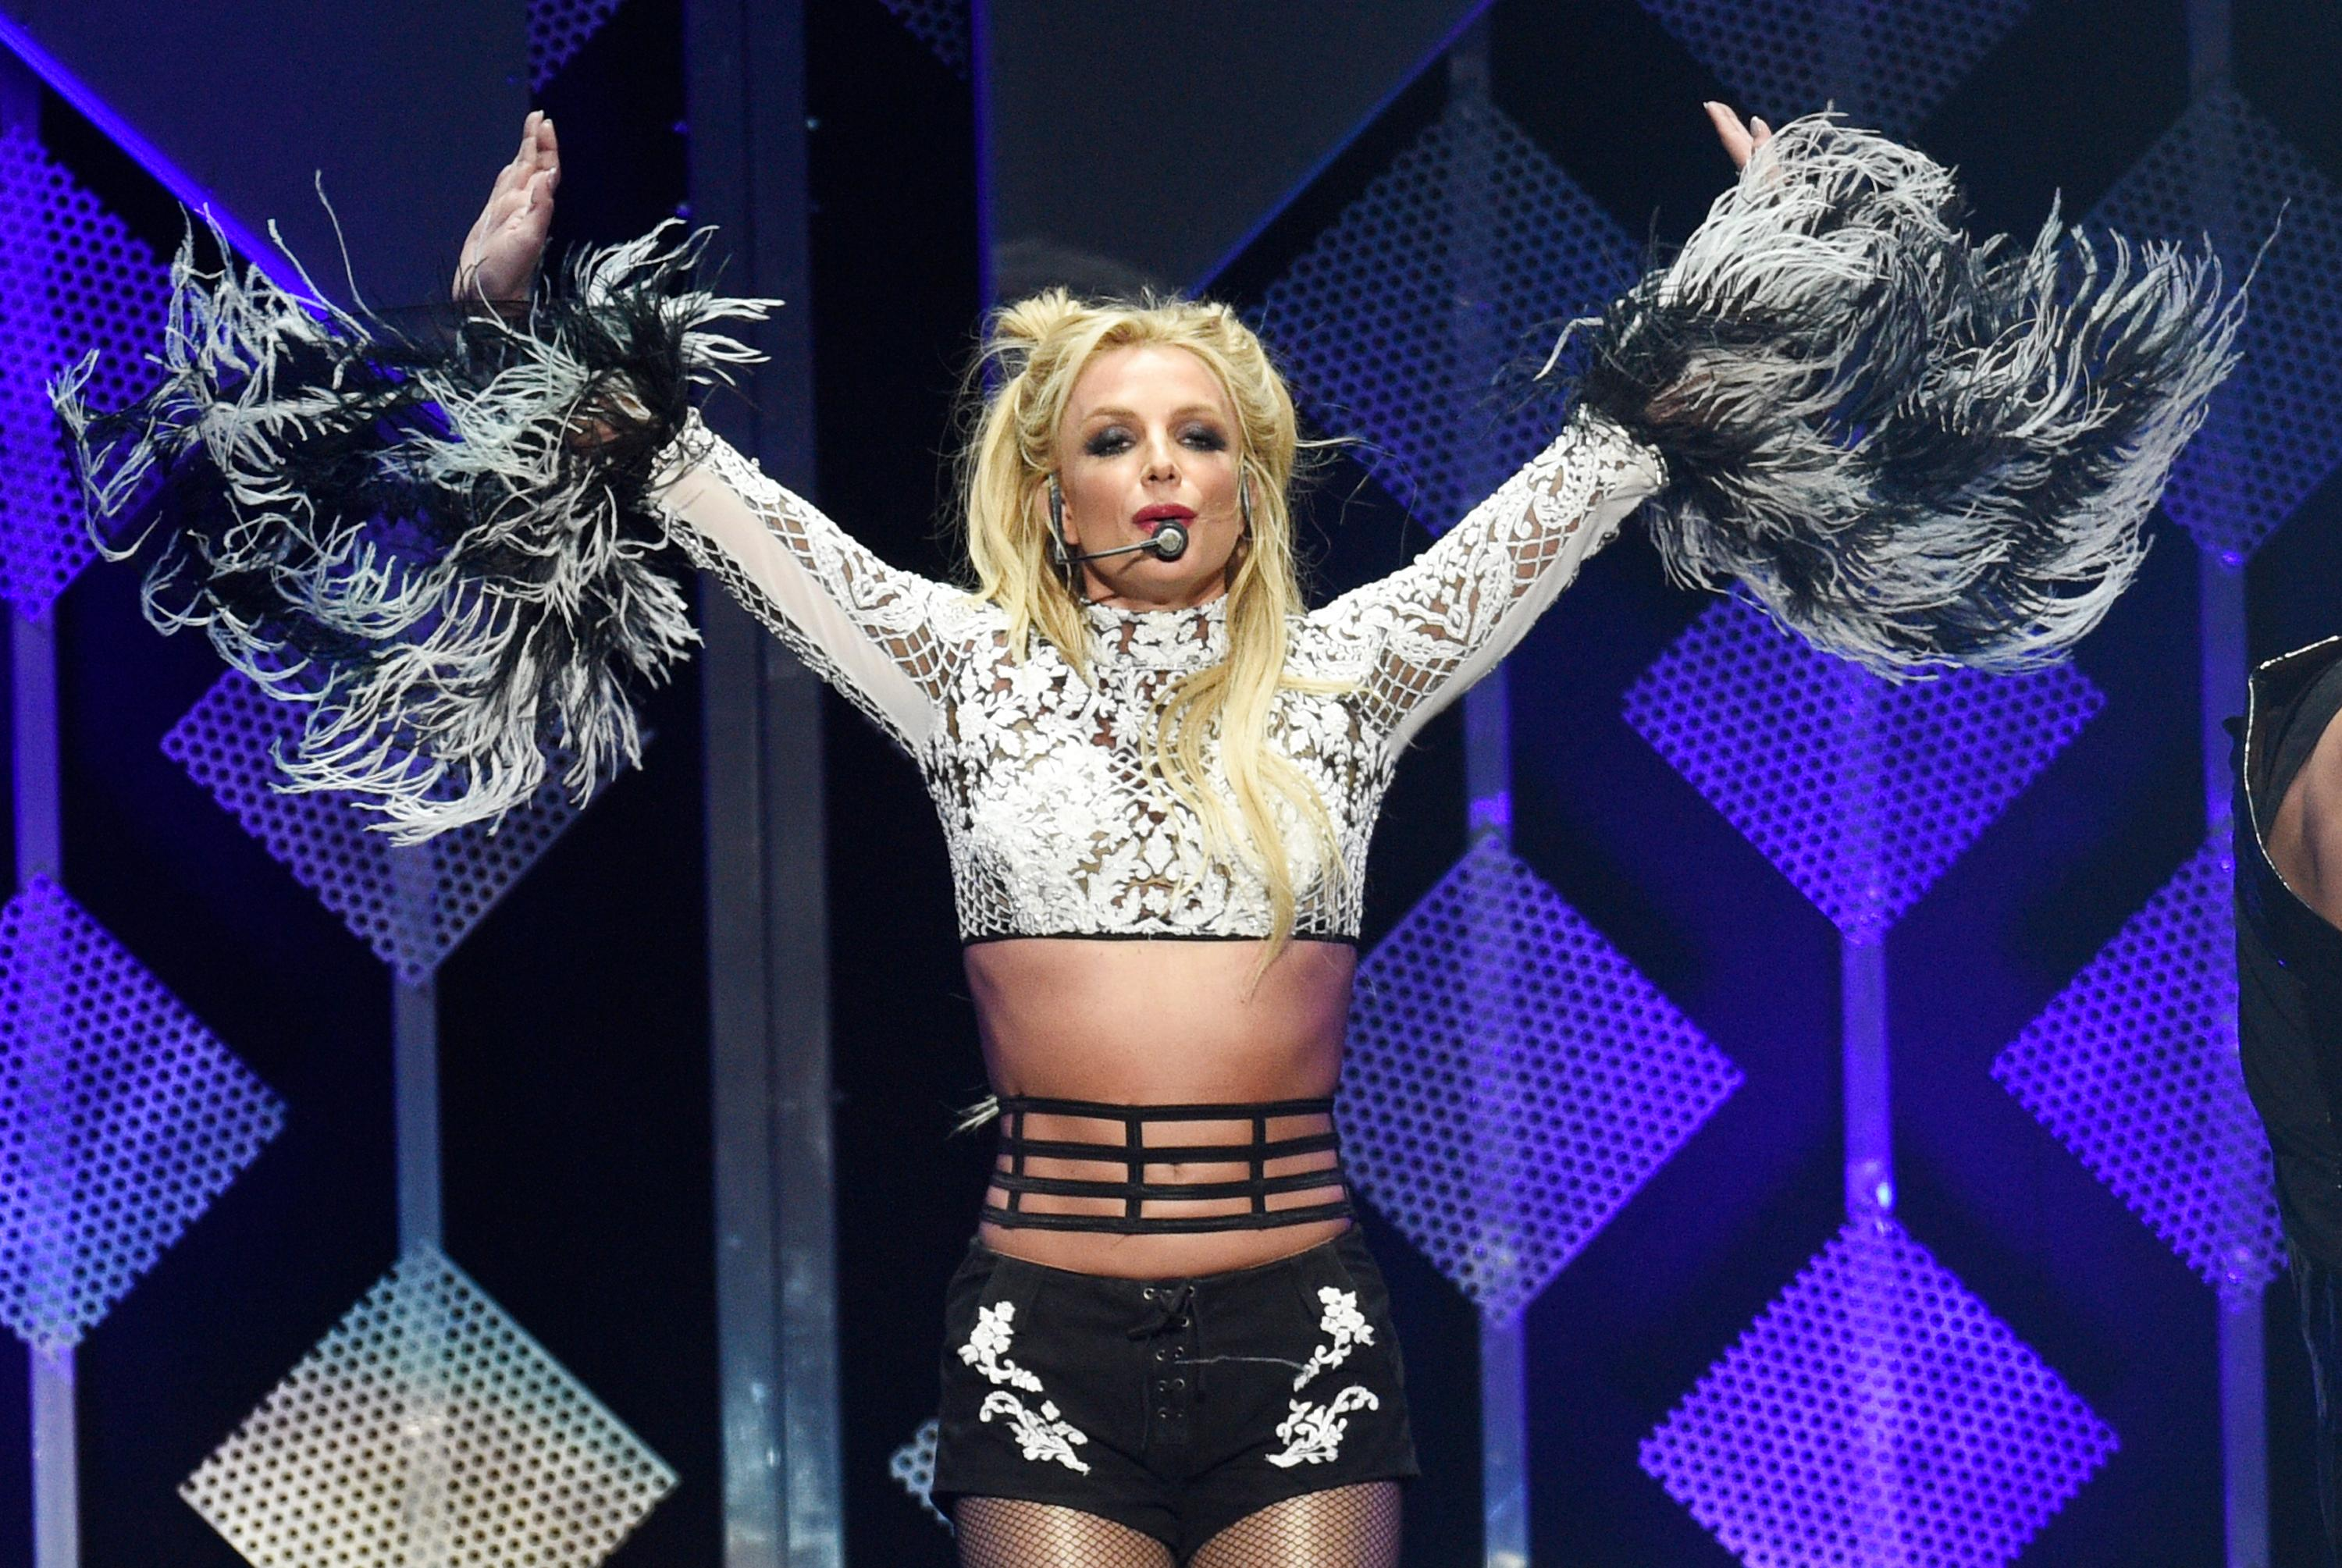 Britney Spears performs at the 2016 Jingle Ball at Staples Center on Friday, Dec. 2, 2016, in Los Angeles. (Photo by Chris Pizzello/Invision/AP)